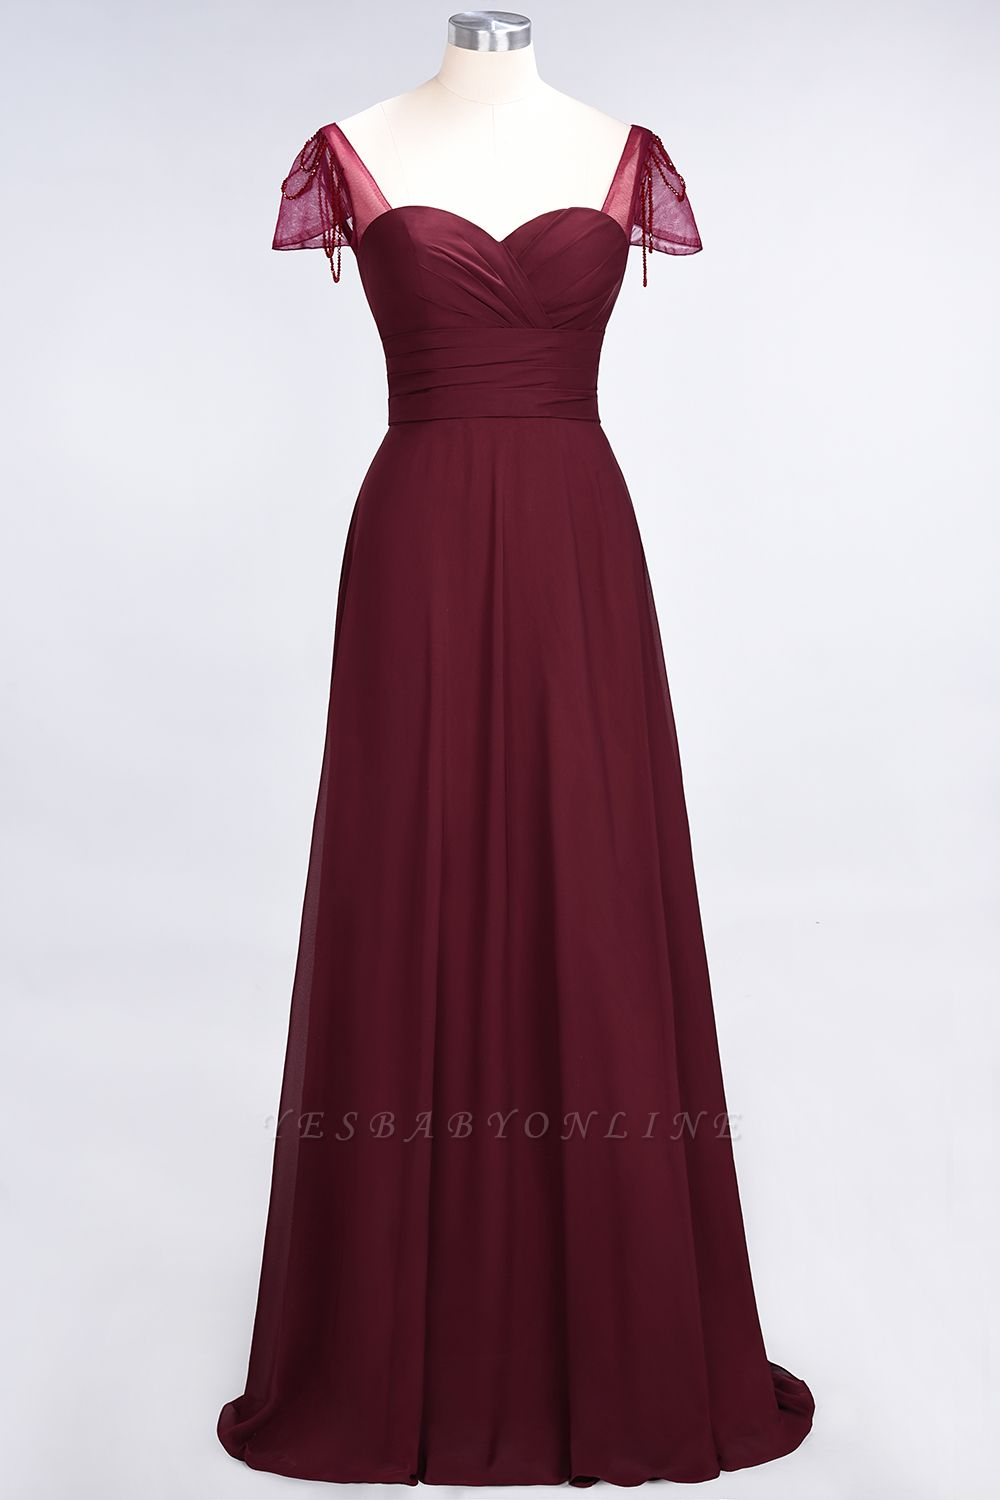 A-Line Sweetheart Cap-Sleeves Ruffle Floor-Length  Bridesmaid Dress with Beadings